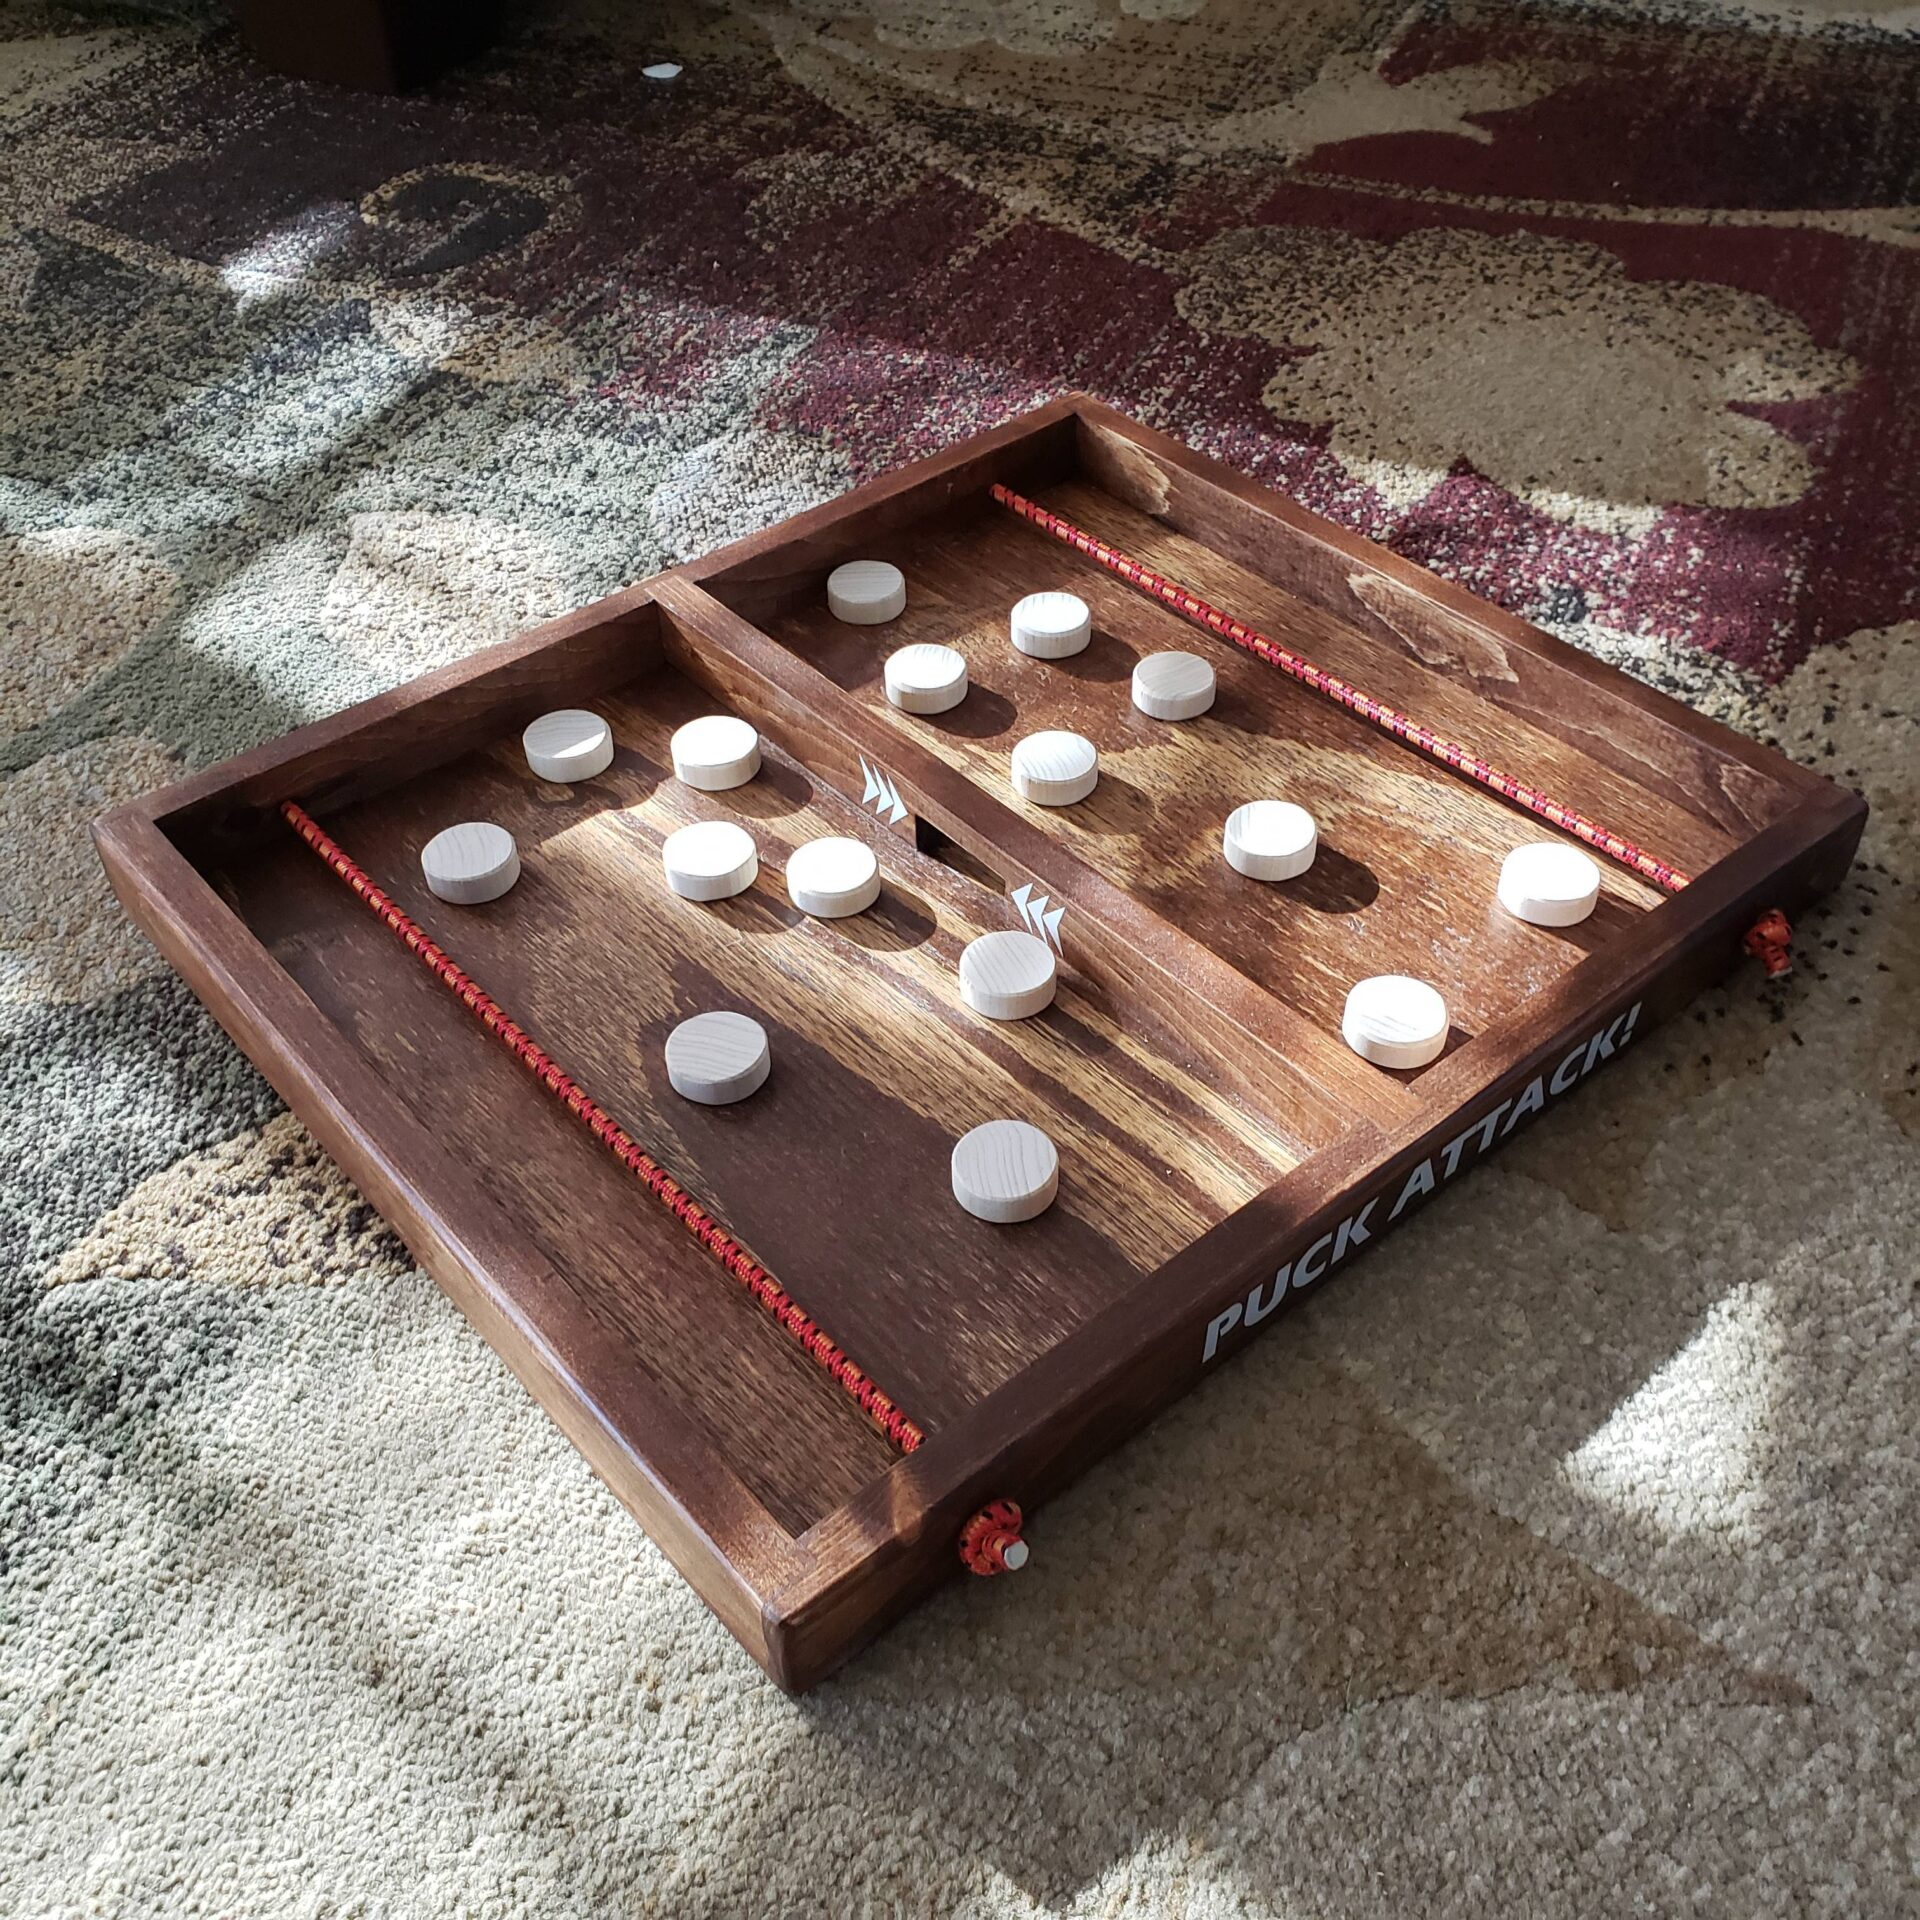 Puck Attack (Pucket) Game